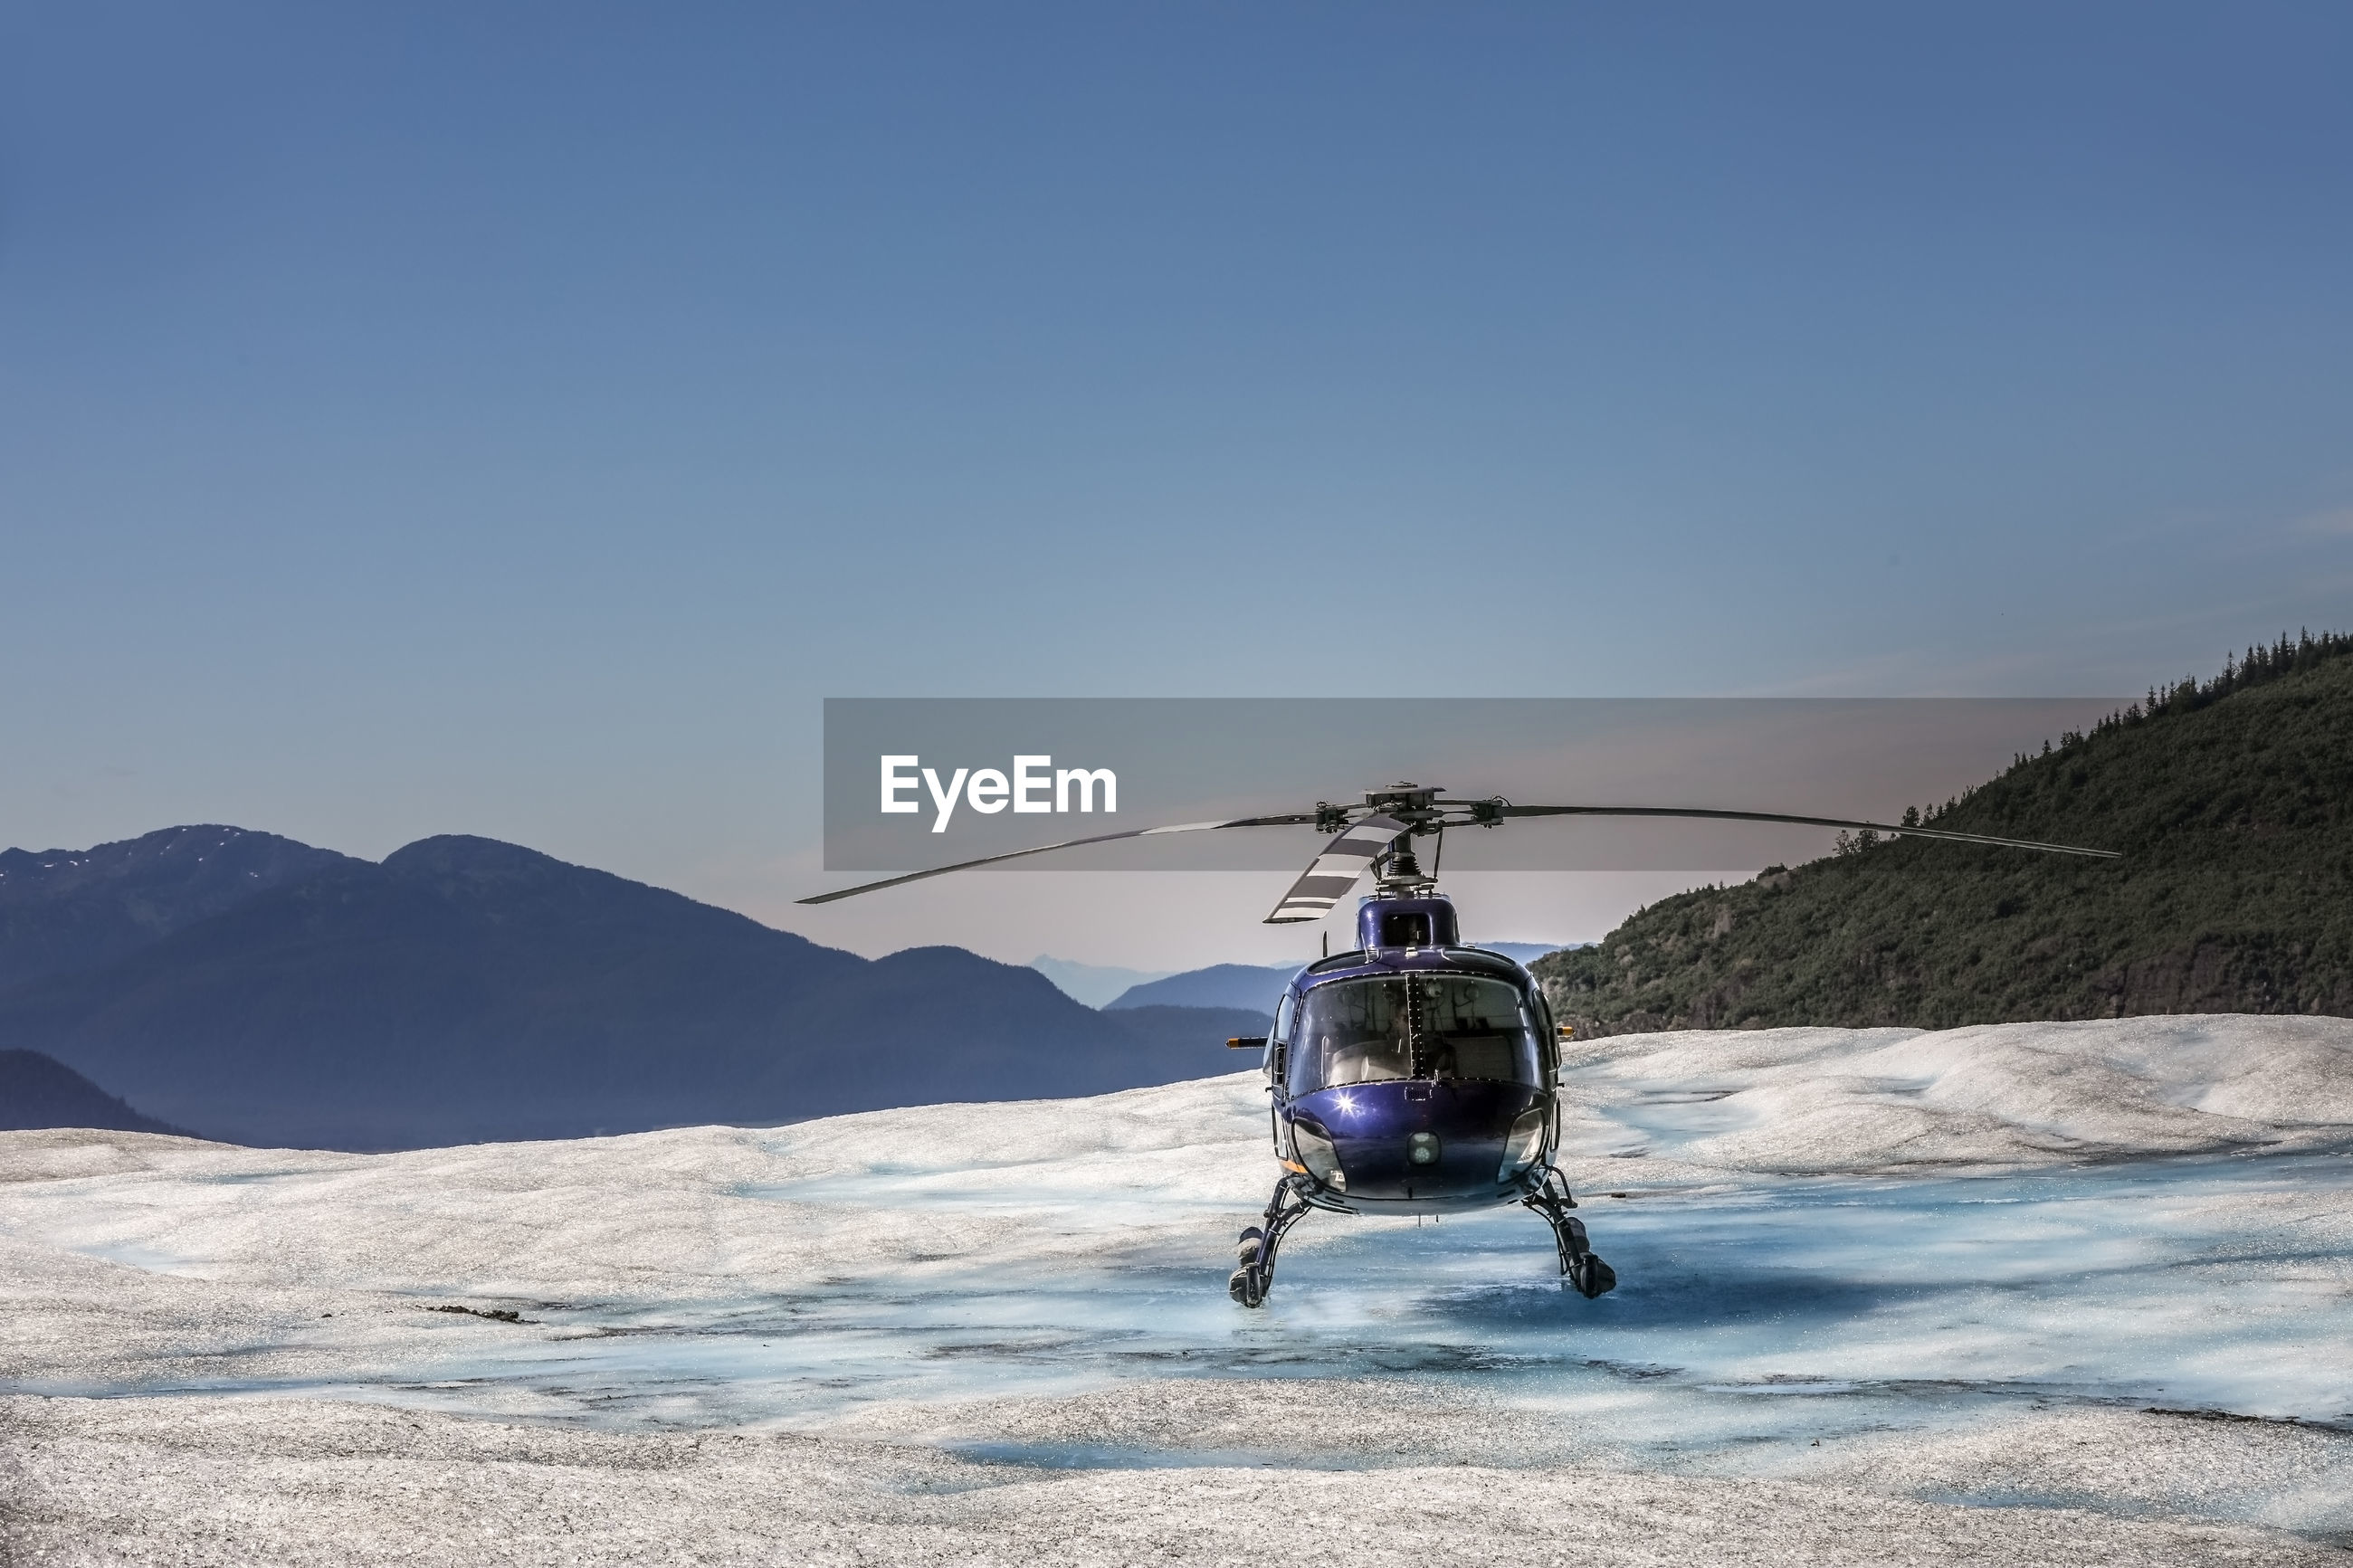 Helicopter landing on snowcapped mountain against sky